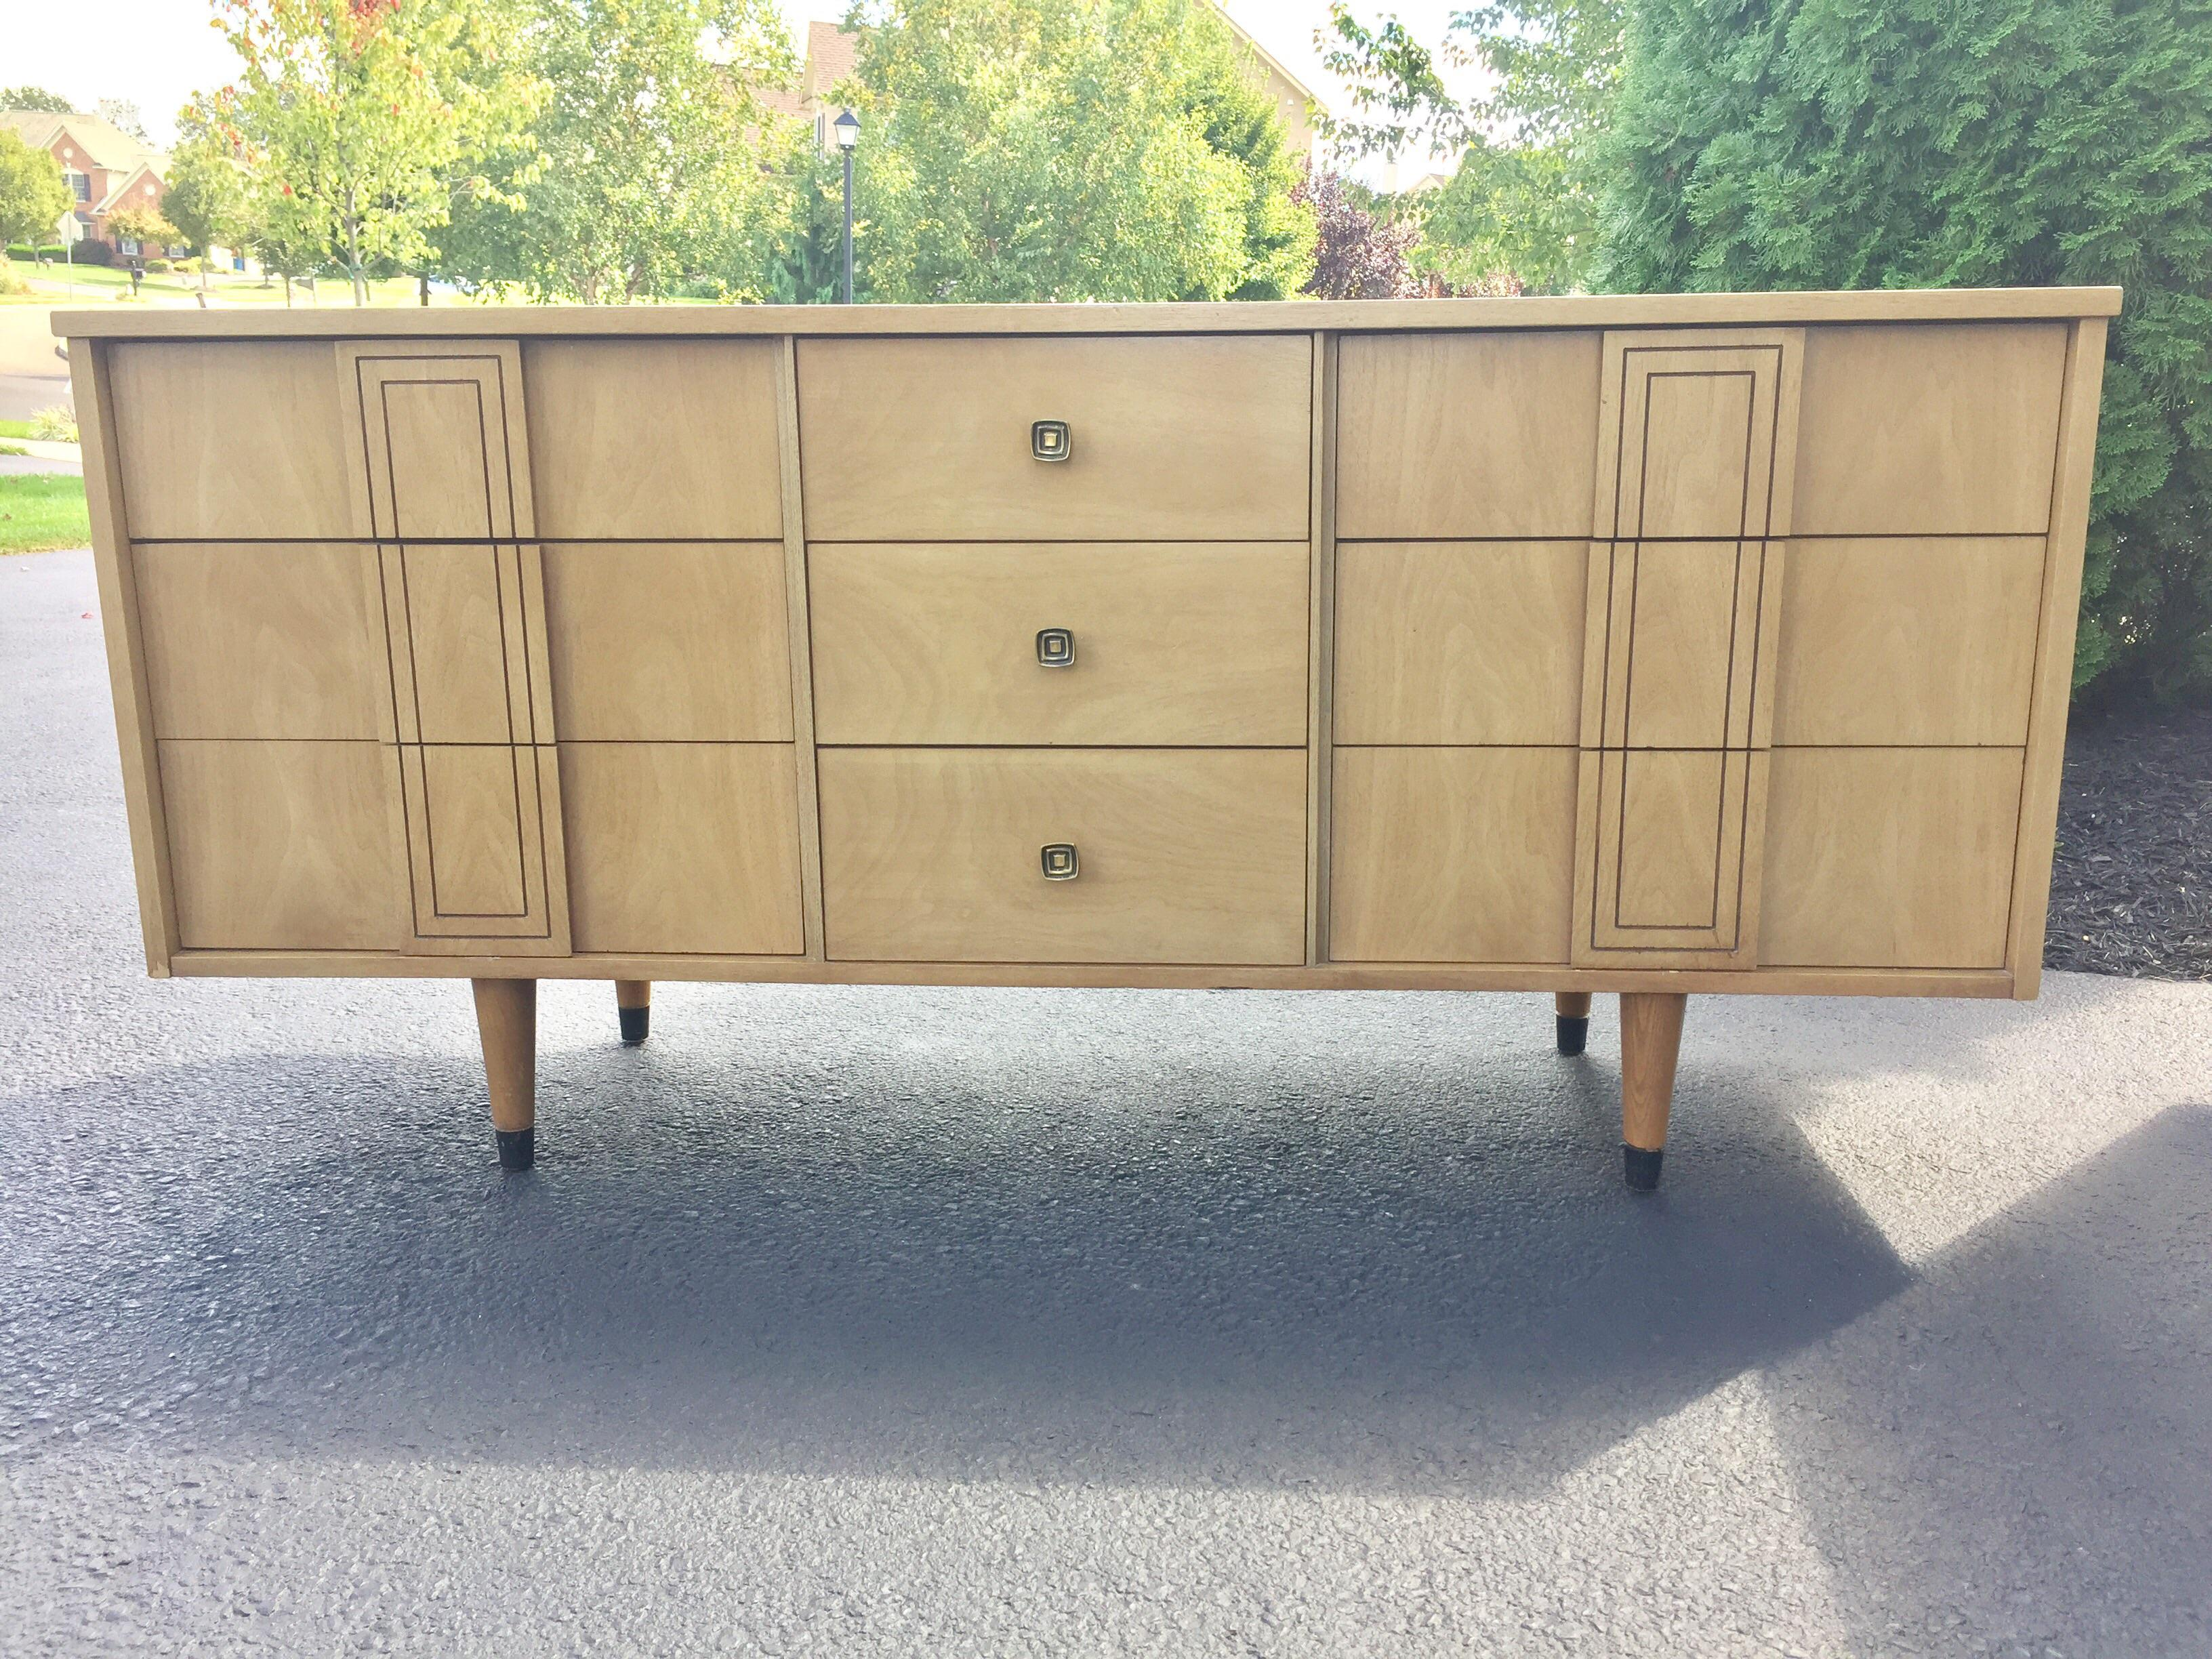 Marvelous Mid Century Distinctive Furniture By Stanley Credenza   Image 2 Of 11